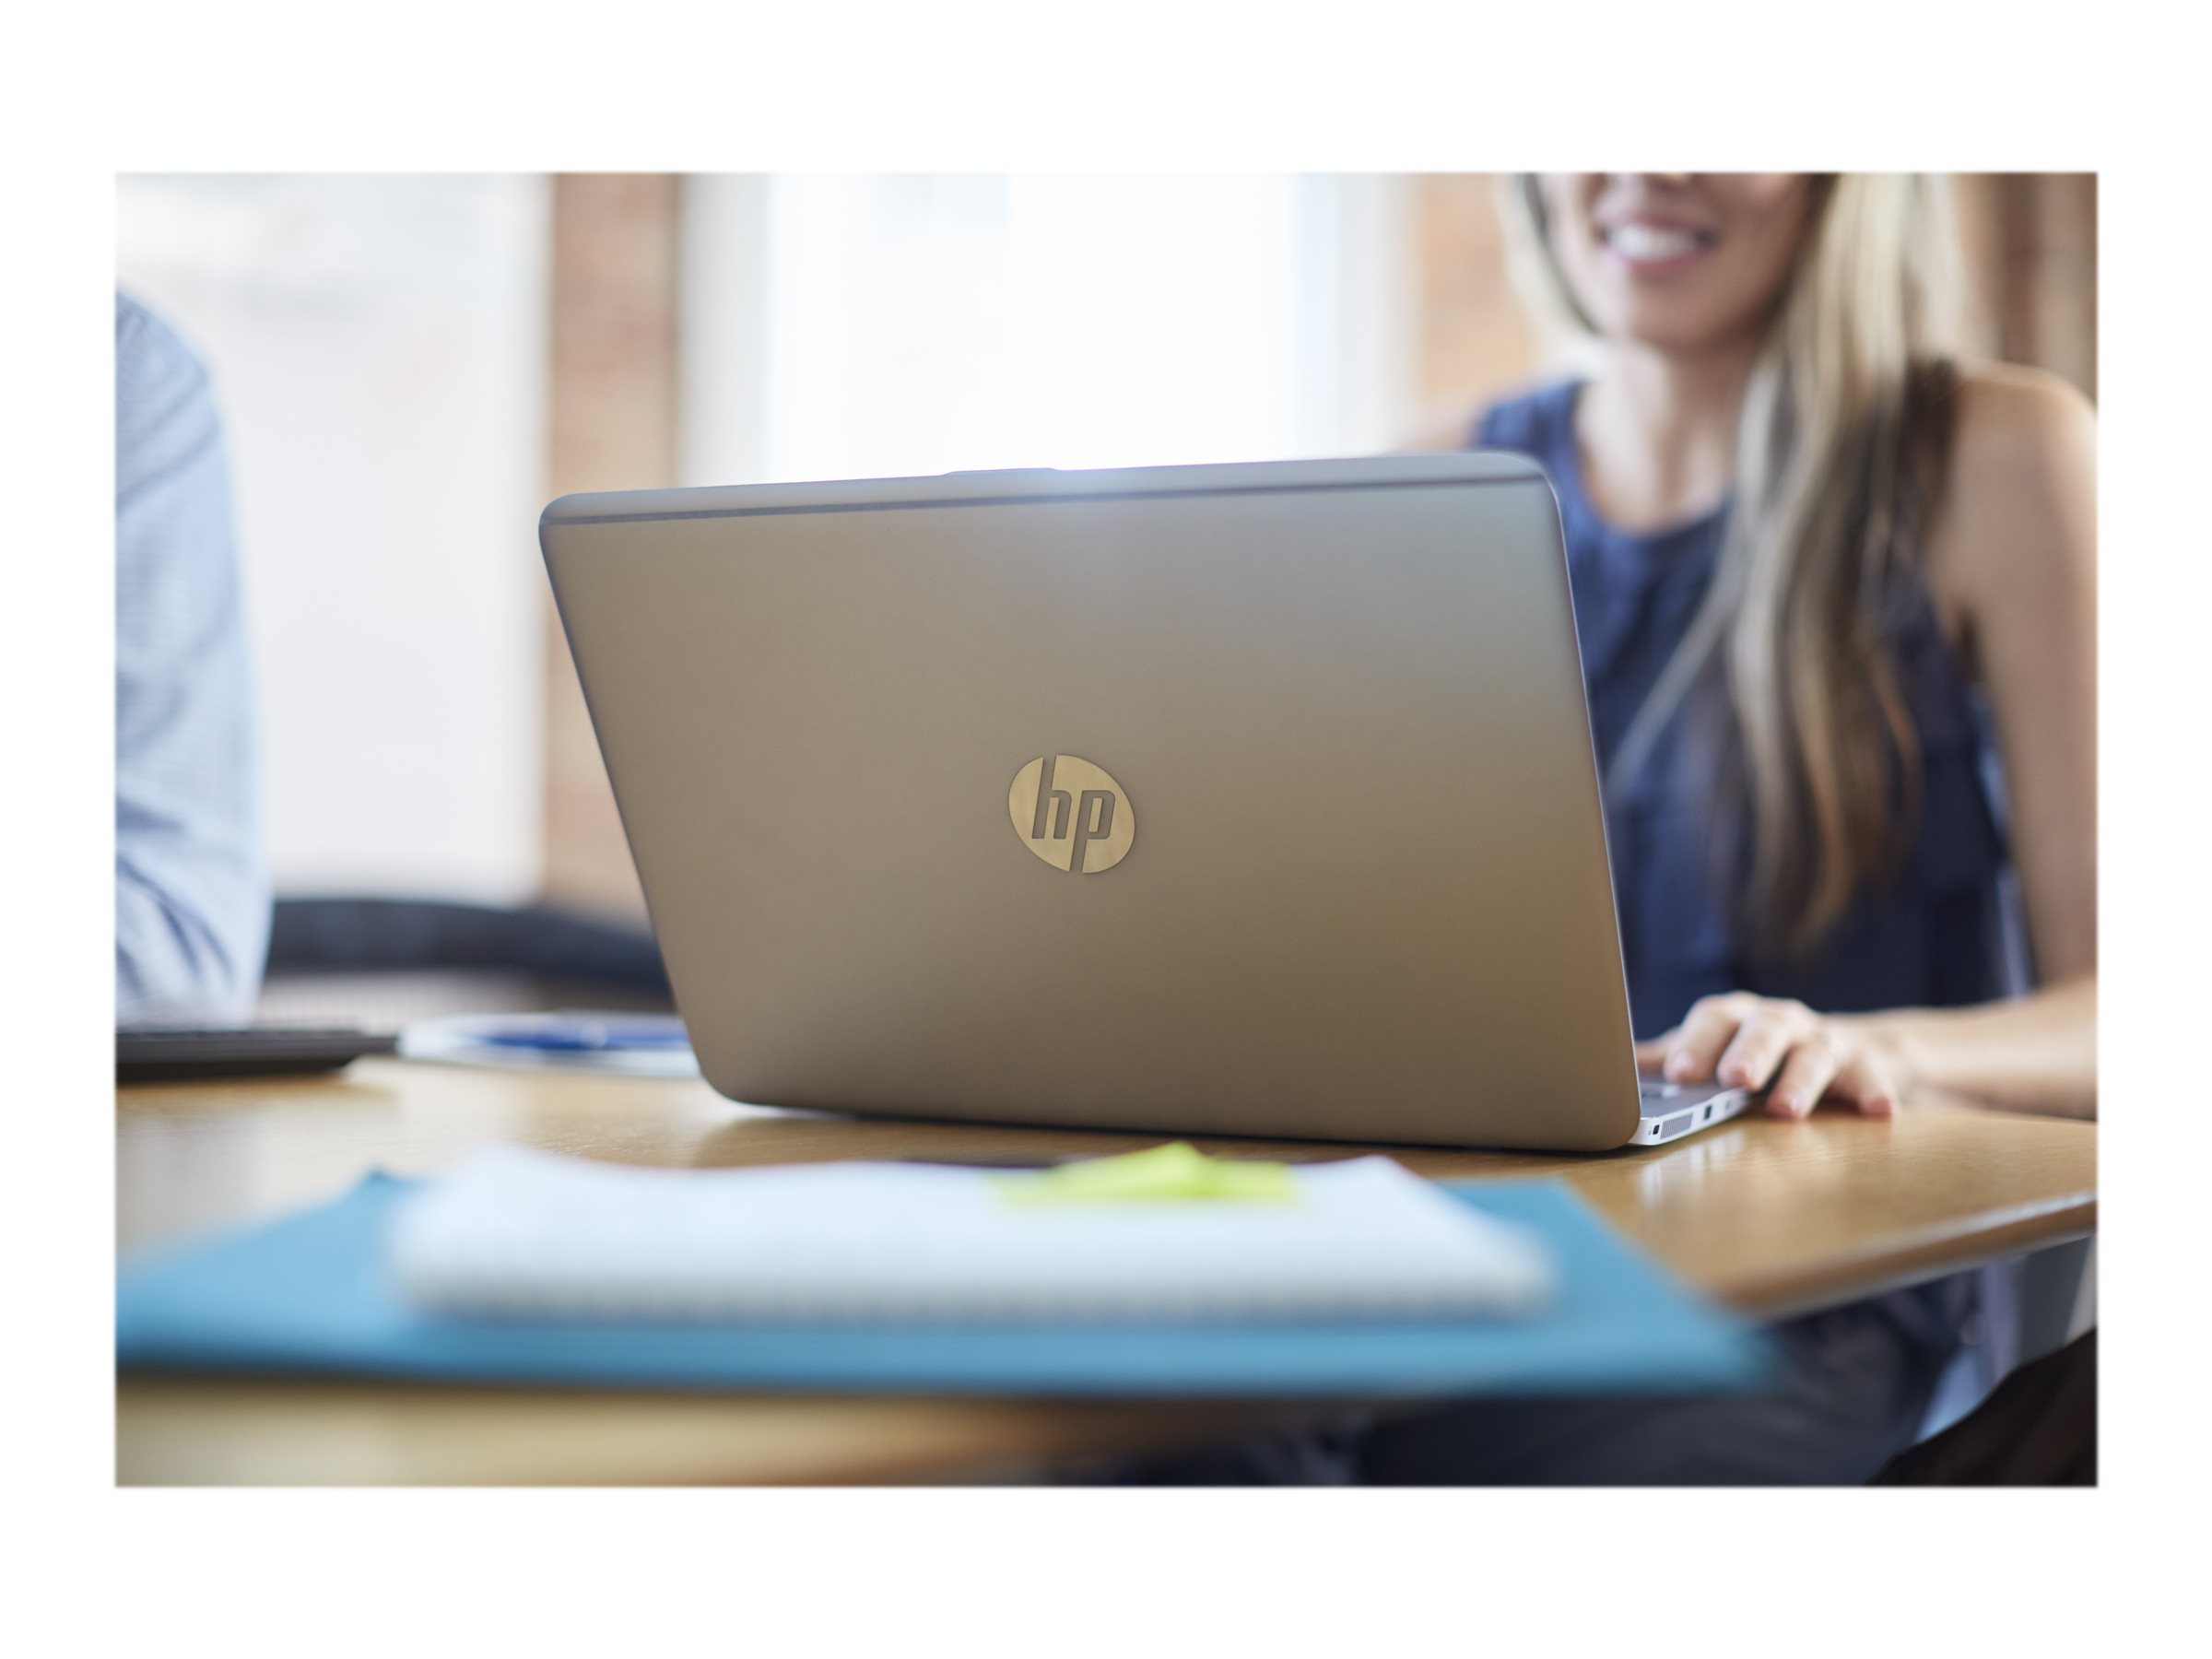 HP Inc. V1P93UA Image 2